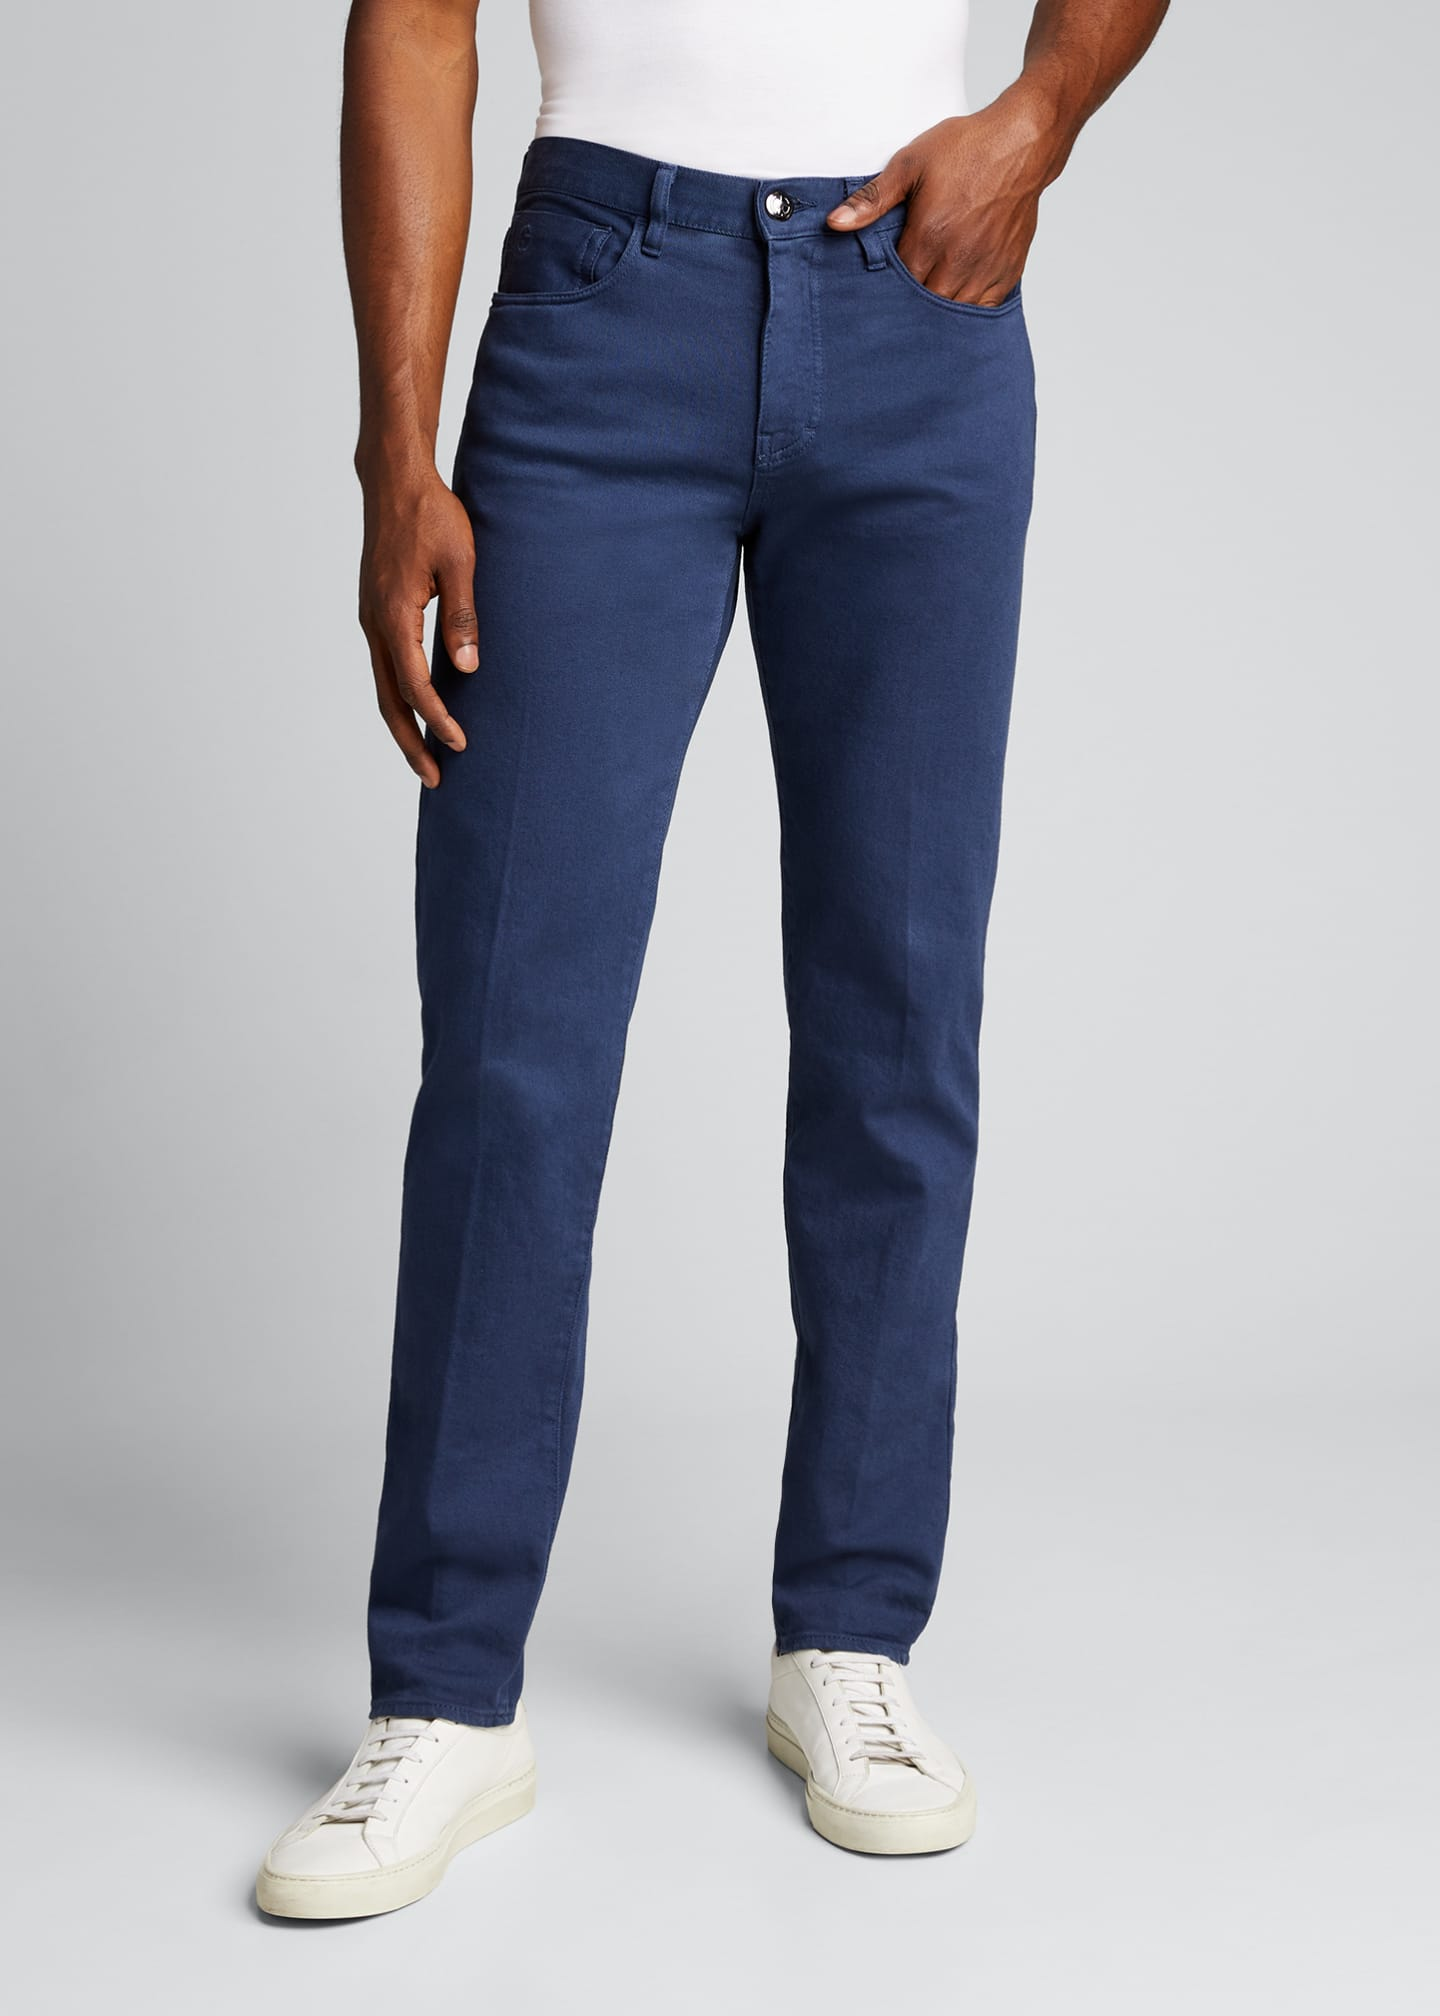 Image 3 of 5: Men's Relaxed Slim Five-Pocket Jeans